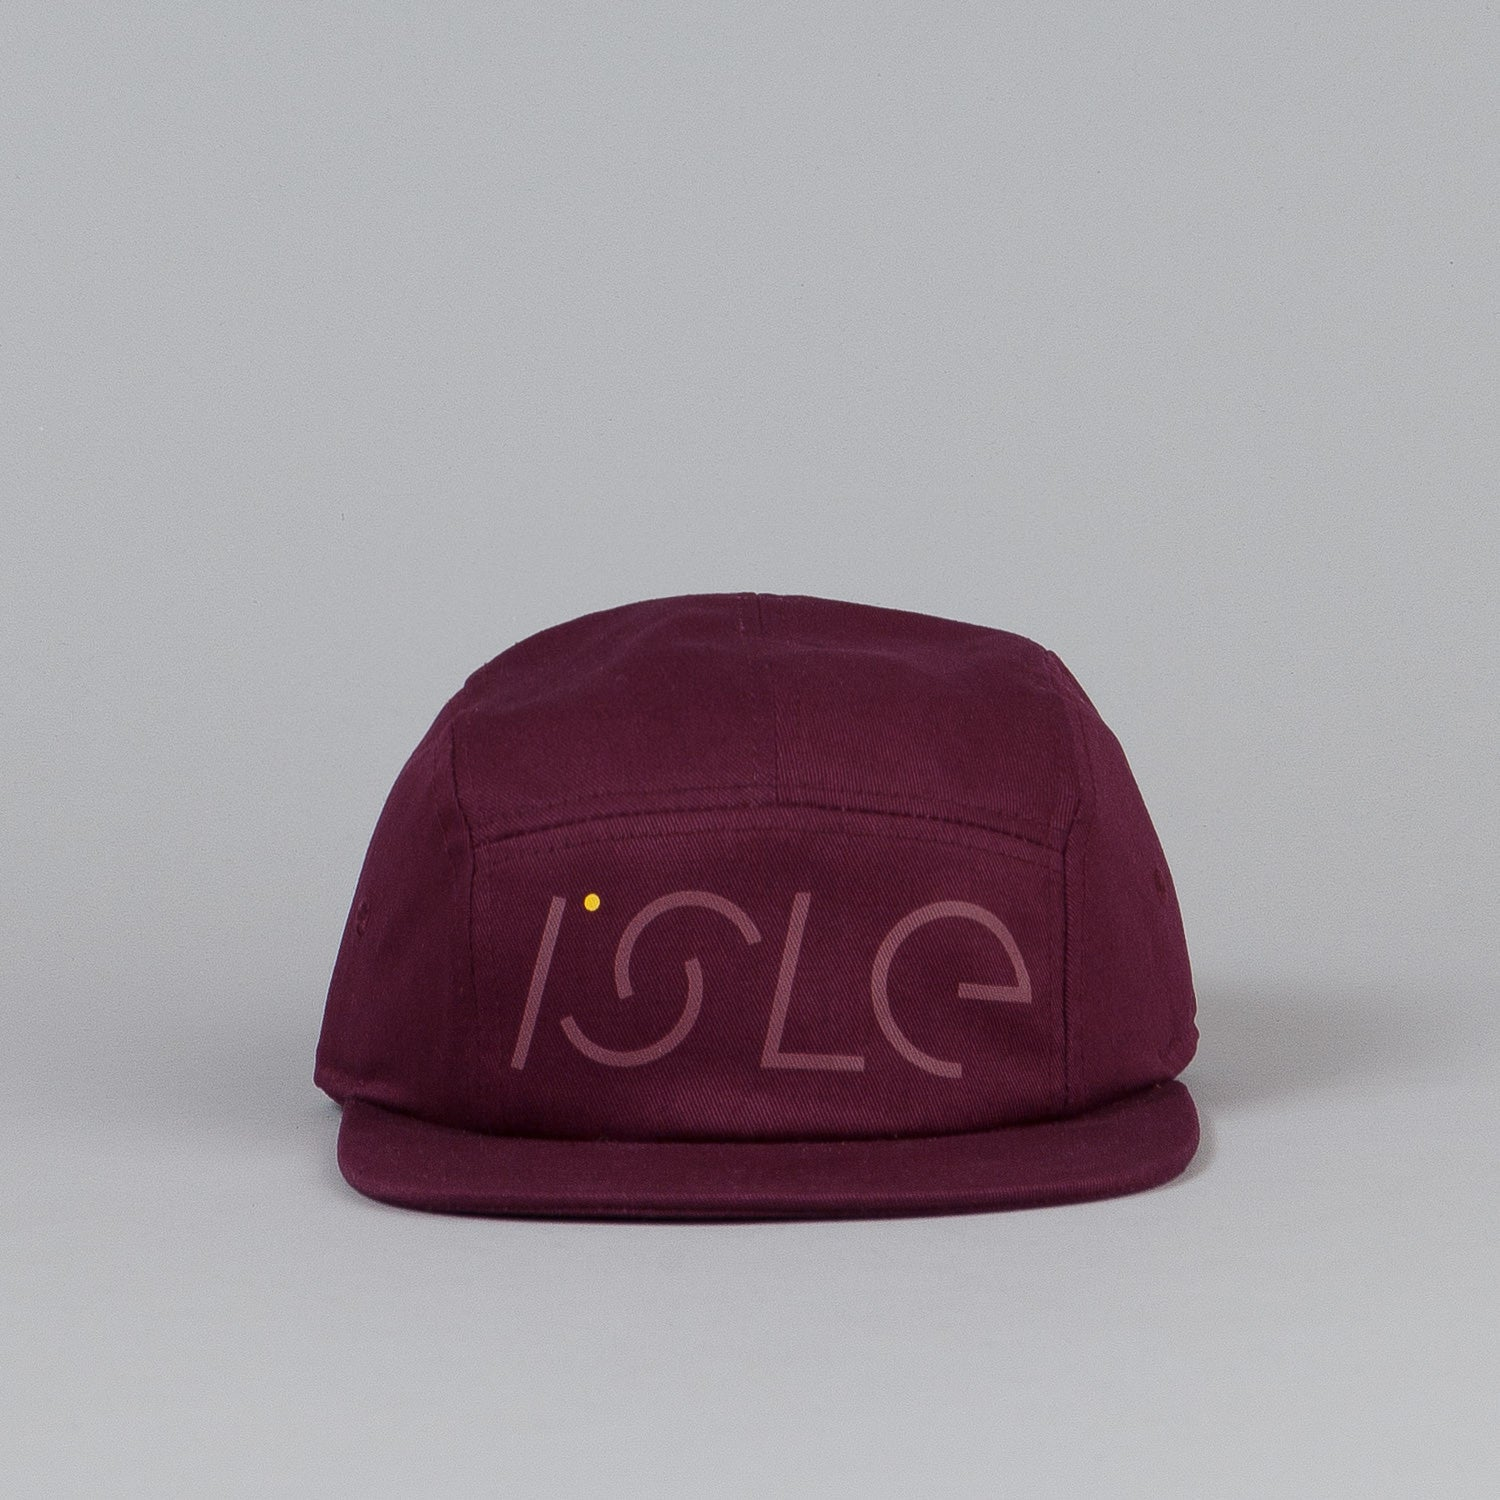 Isle 5 Panel Cap Burgundy